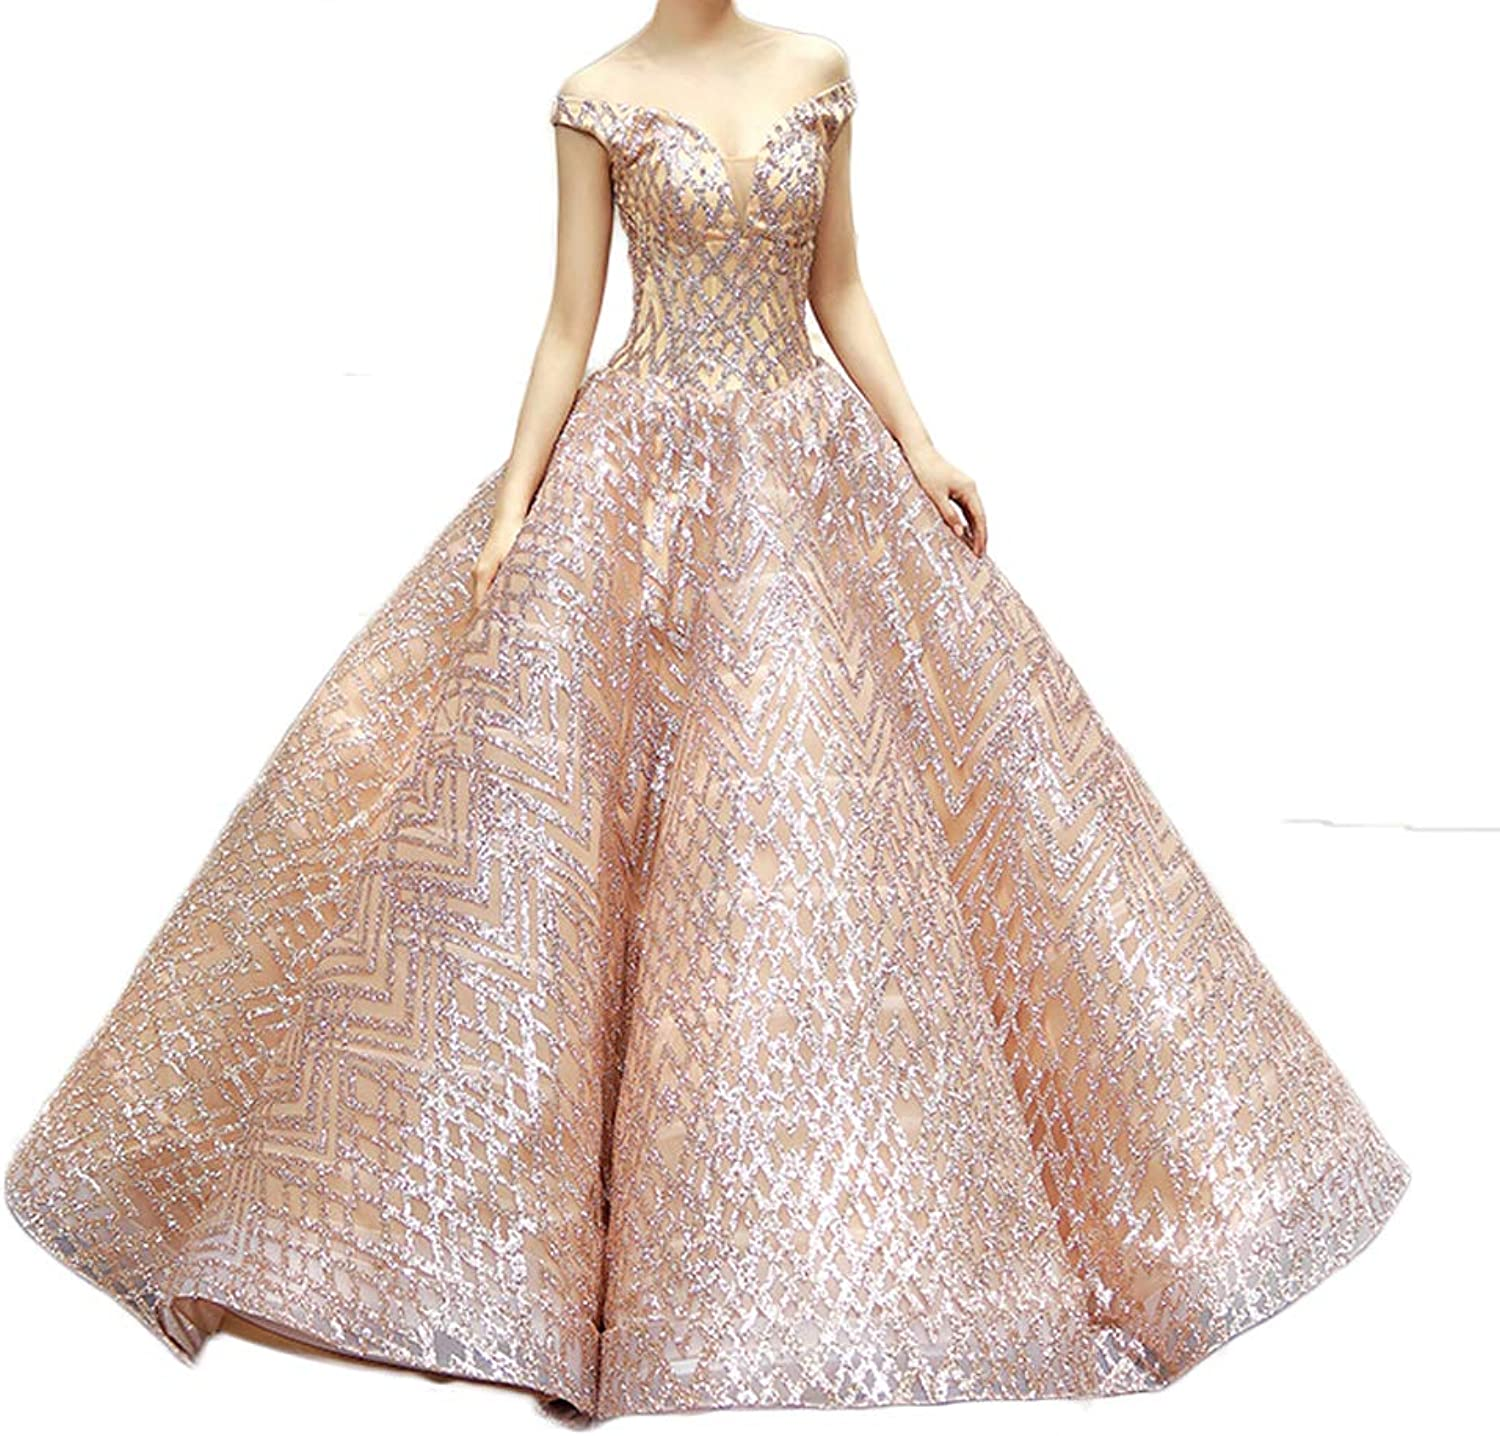 Blacktiedress Luxury Quinceanera Evening Dresses 16 Ball Gowns Pageant Dresses